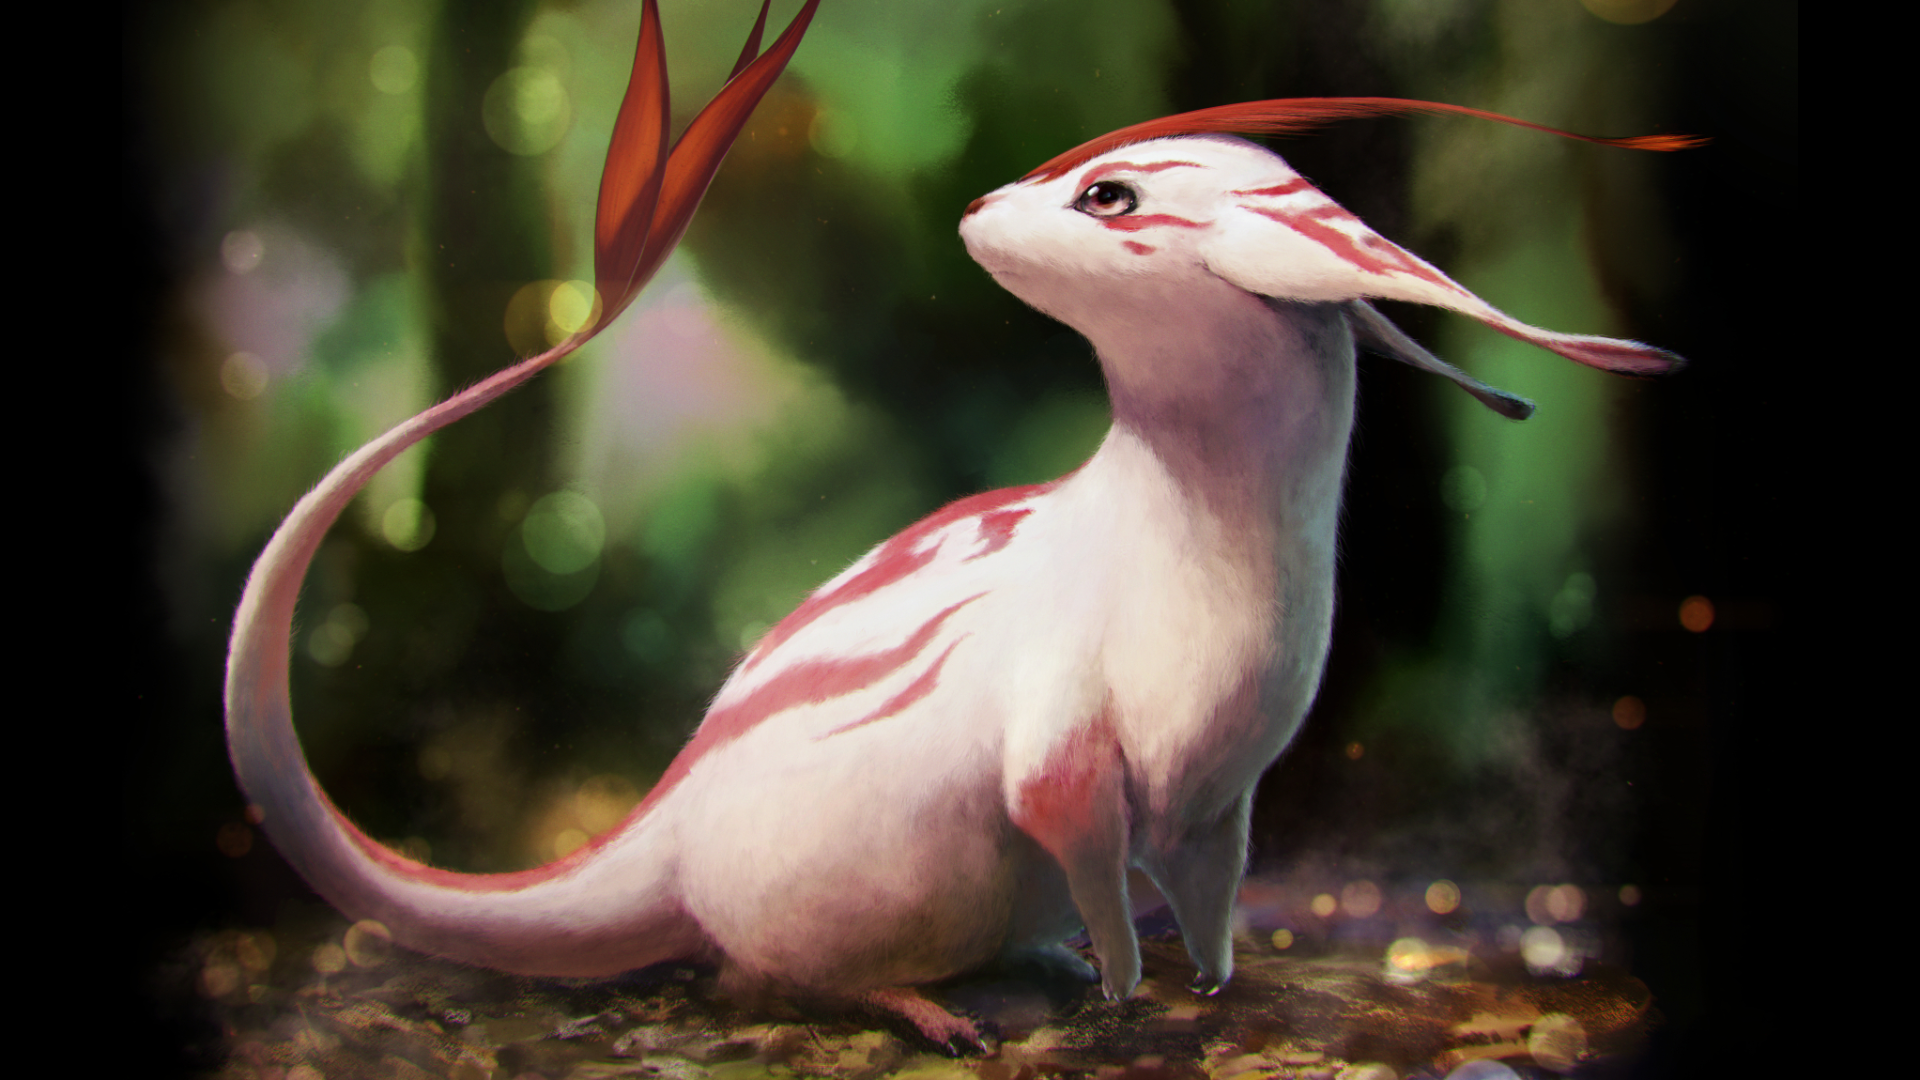 Anime - Pixiv Fantasia Fallen Kings  Animal Creature Wallpaper